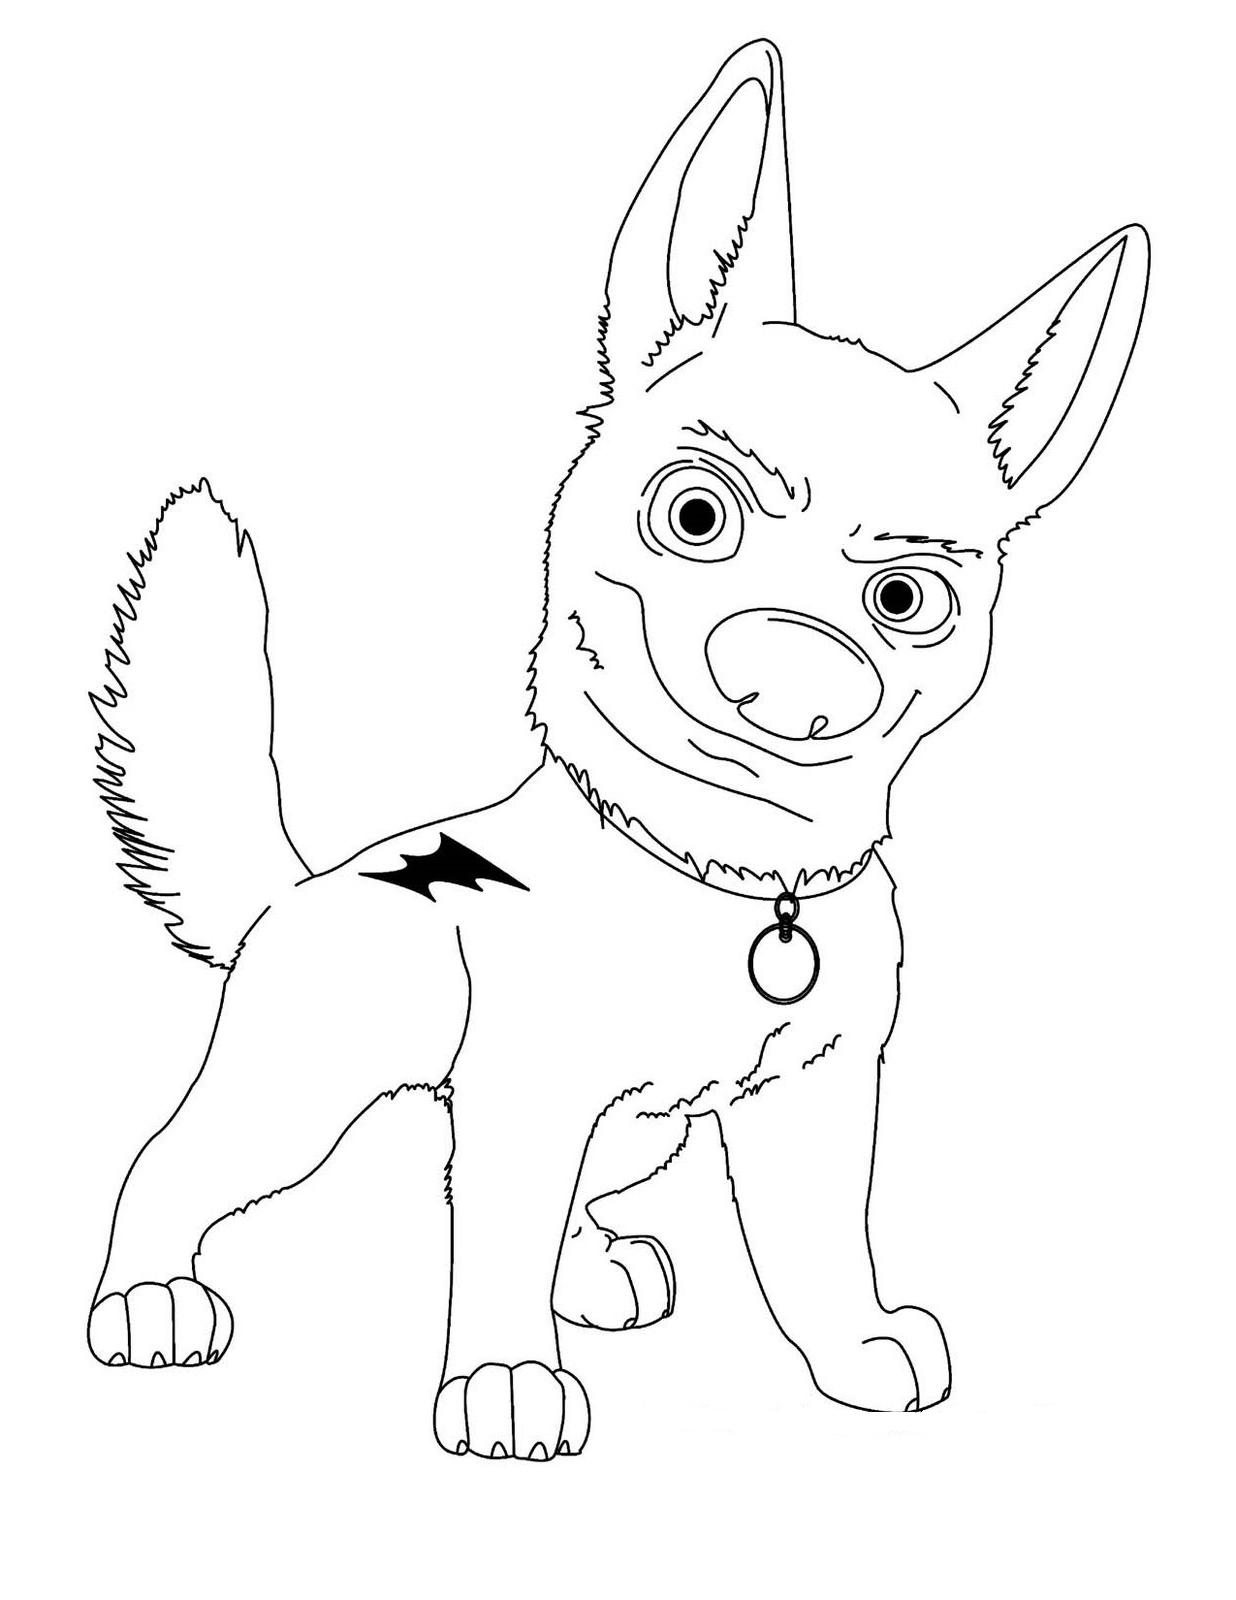 1236x1600 Huge Gift Superdog Coloring Pages Reward Whippet Super Dog Patter